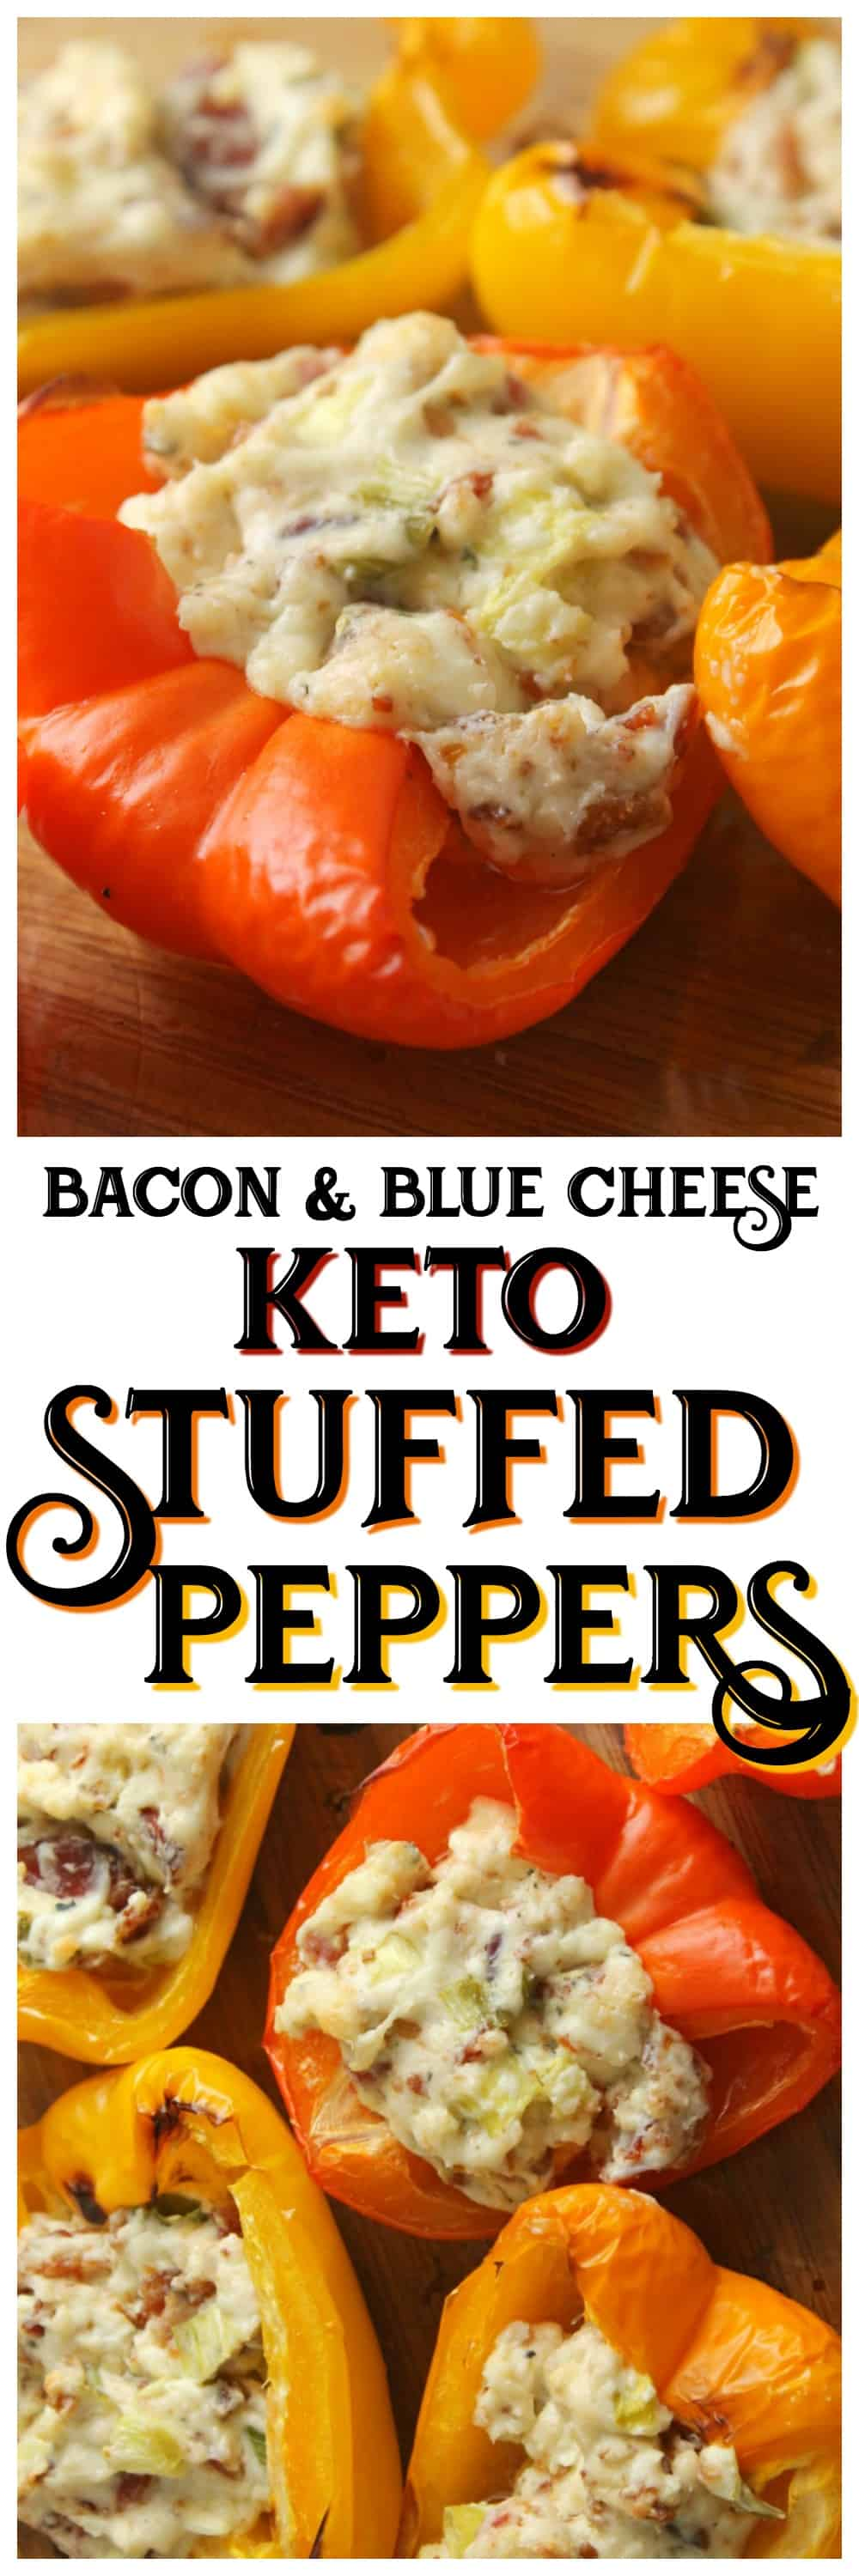 These delicious Bacon & Blue Cheese Stuffed Peppers are the perfect low carb veggies for your next party! #keto